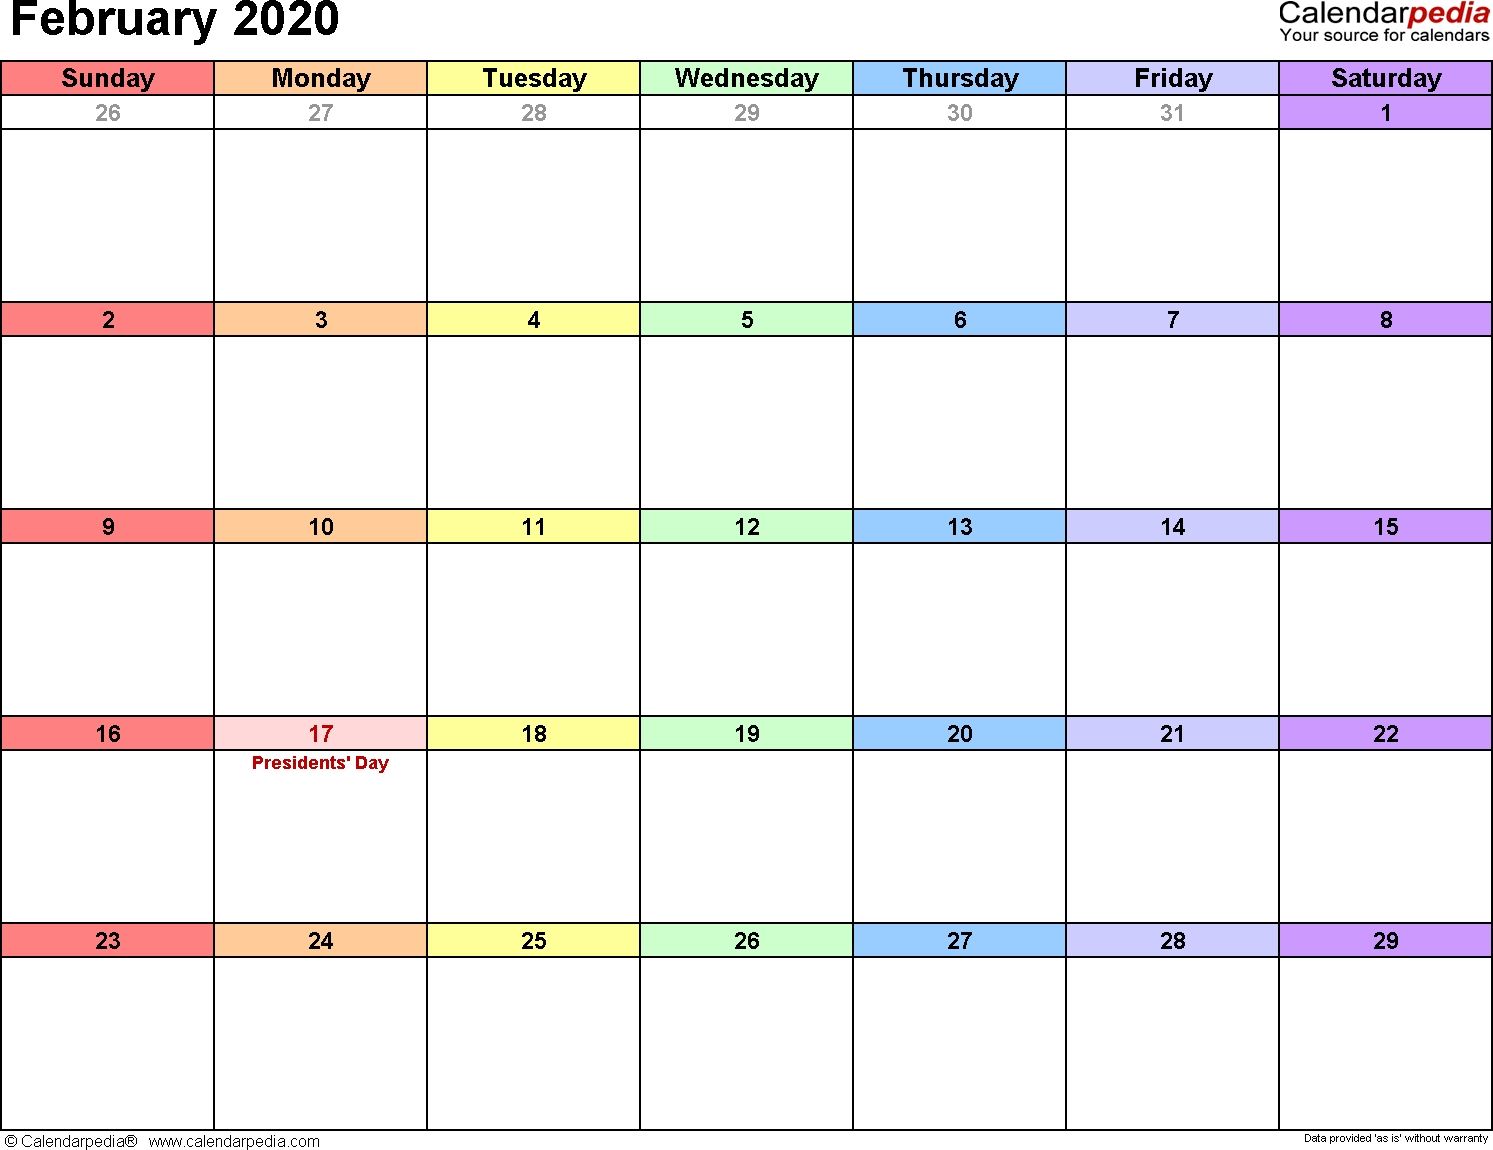 February 2020 Calendars For Word, Excel & Pdf-January 2020 Calendar Philippines